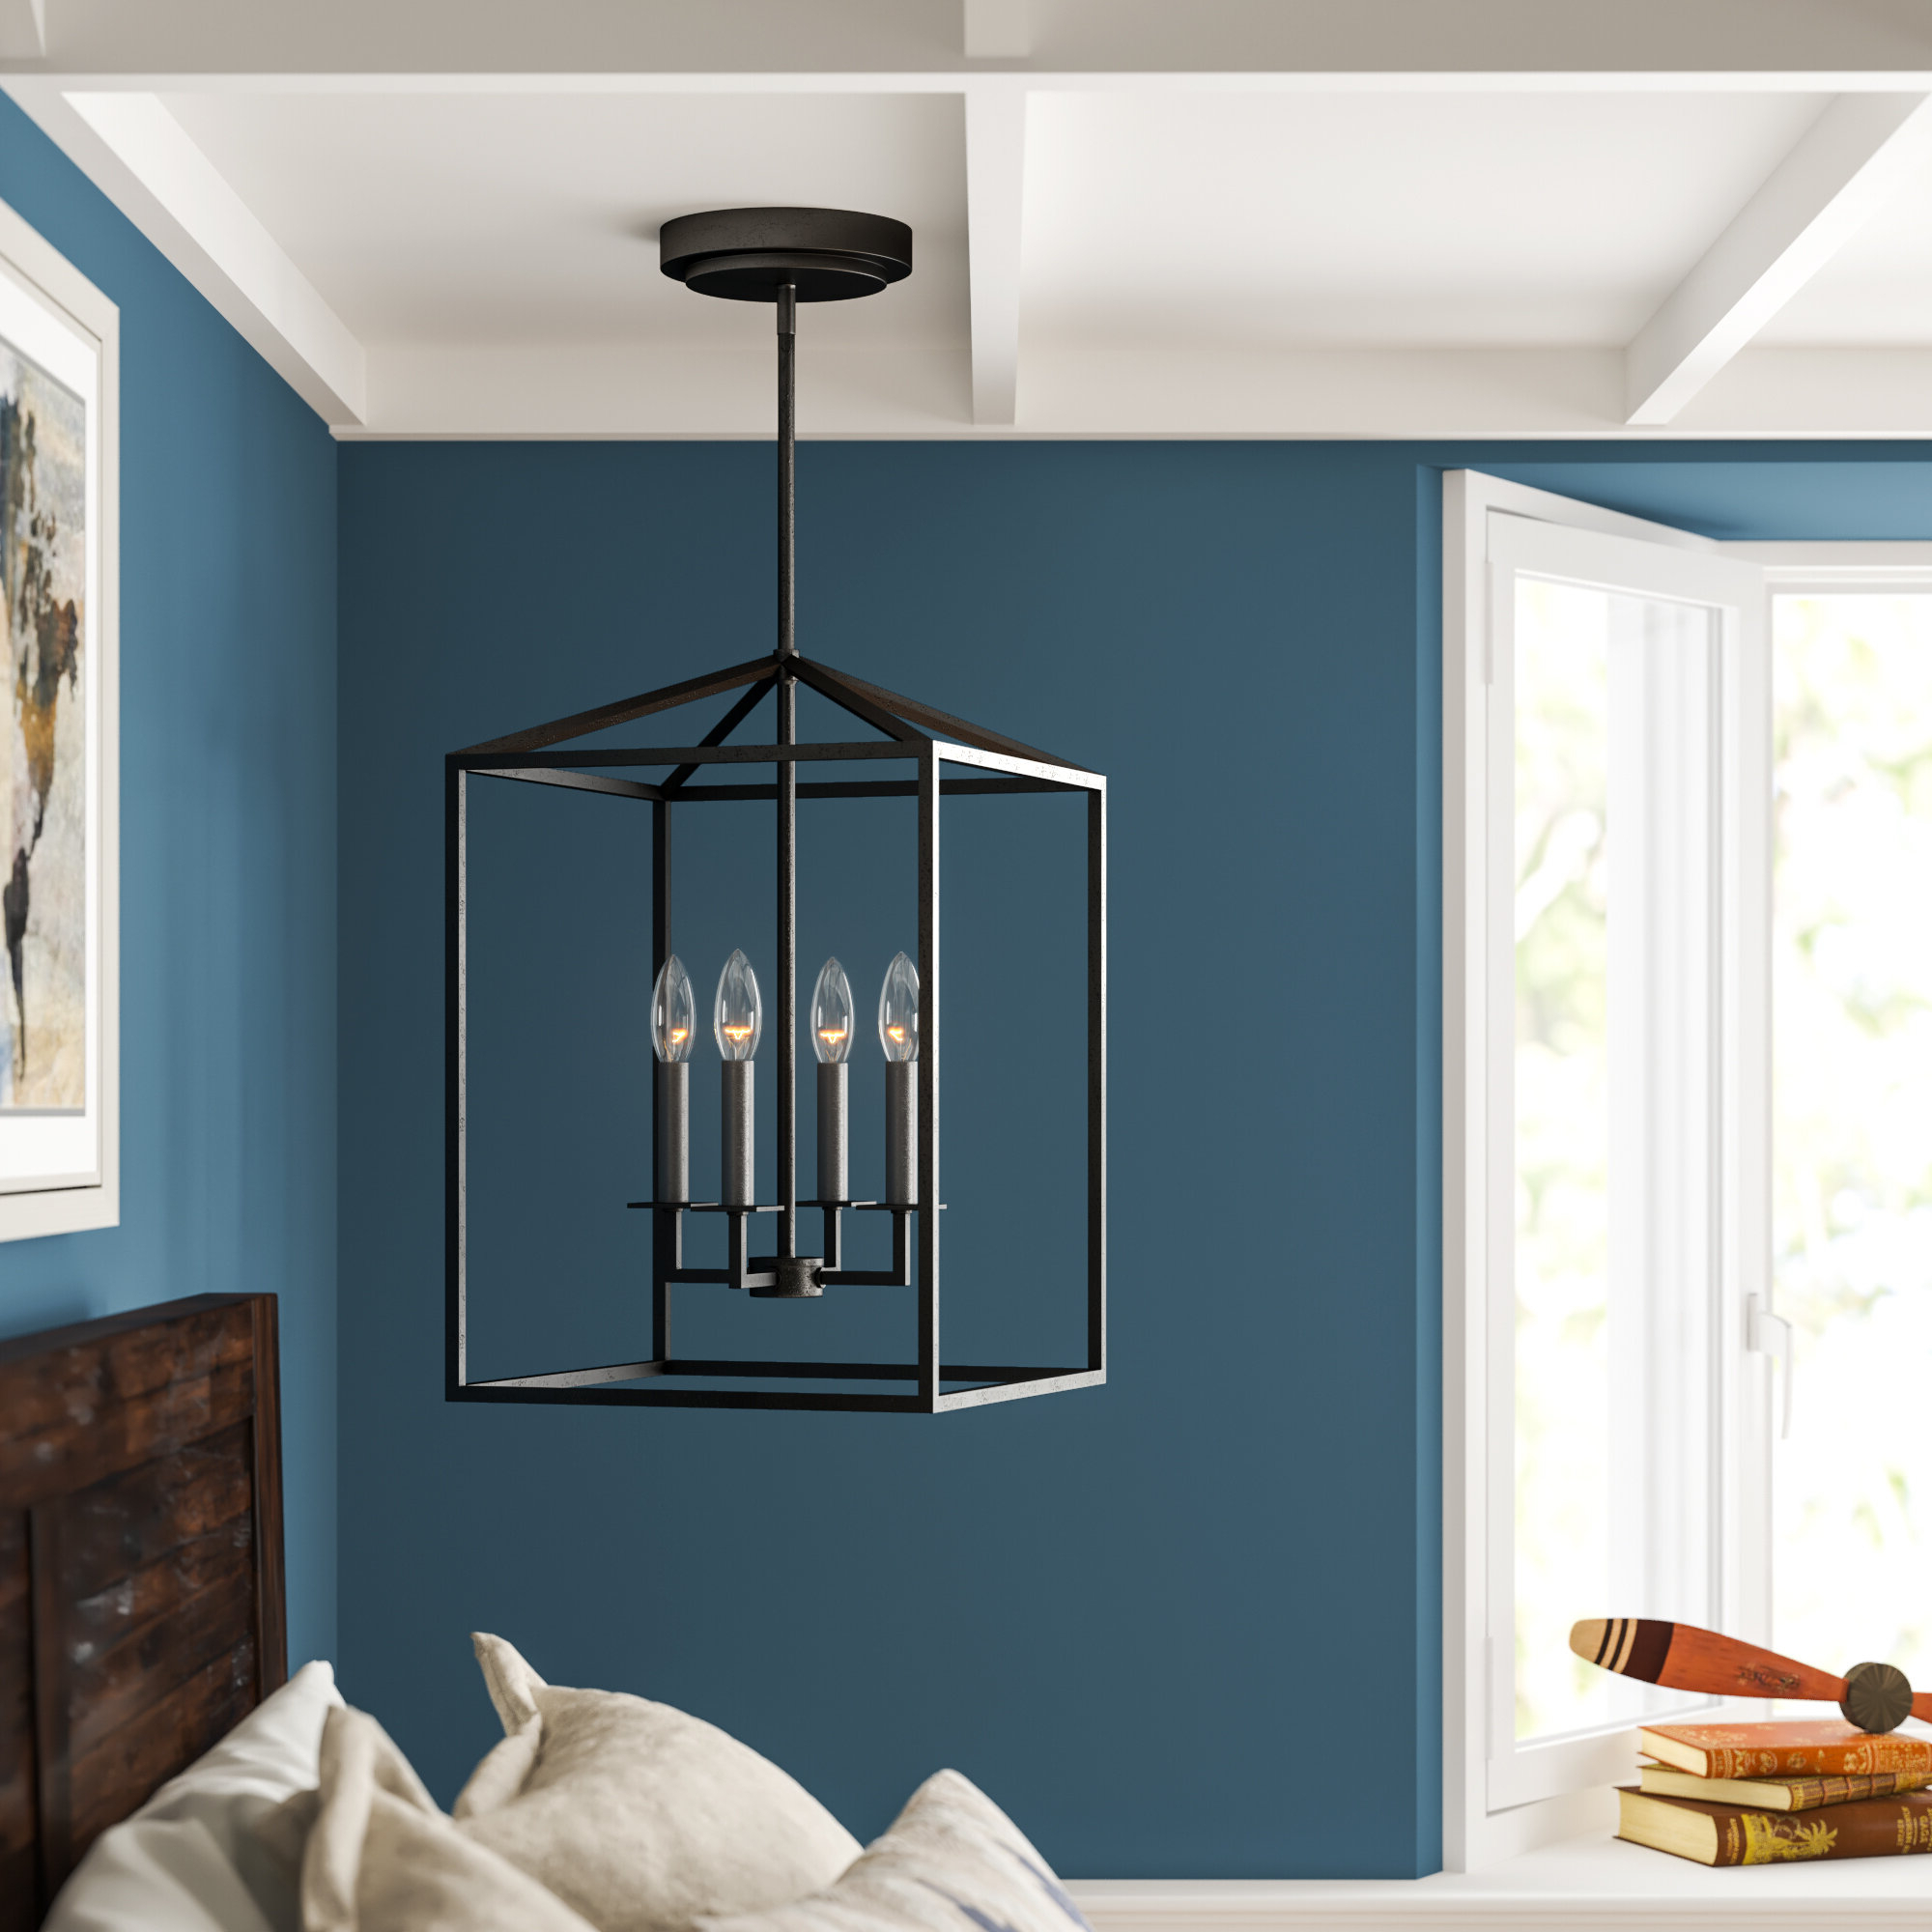 Trendy Odie 4 Light Lantern Square/rectangle Pendant Throughout Odie 4 Light Lantern Square Pendants (View 2 of 20)